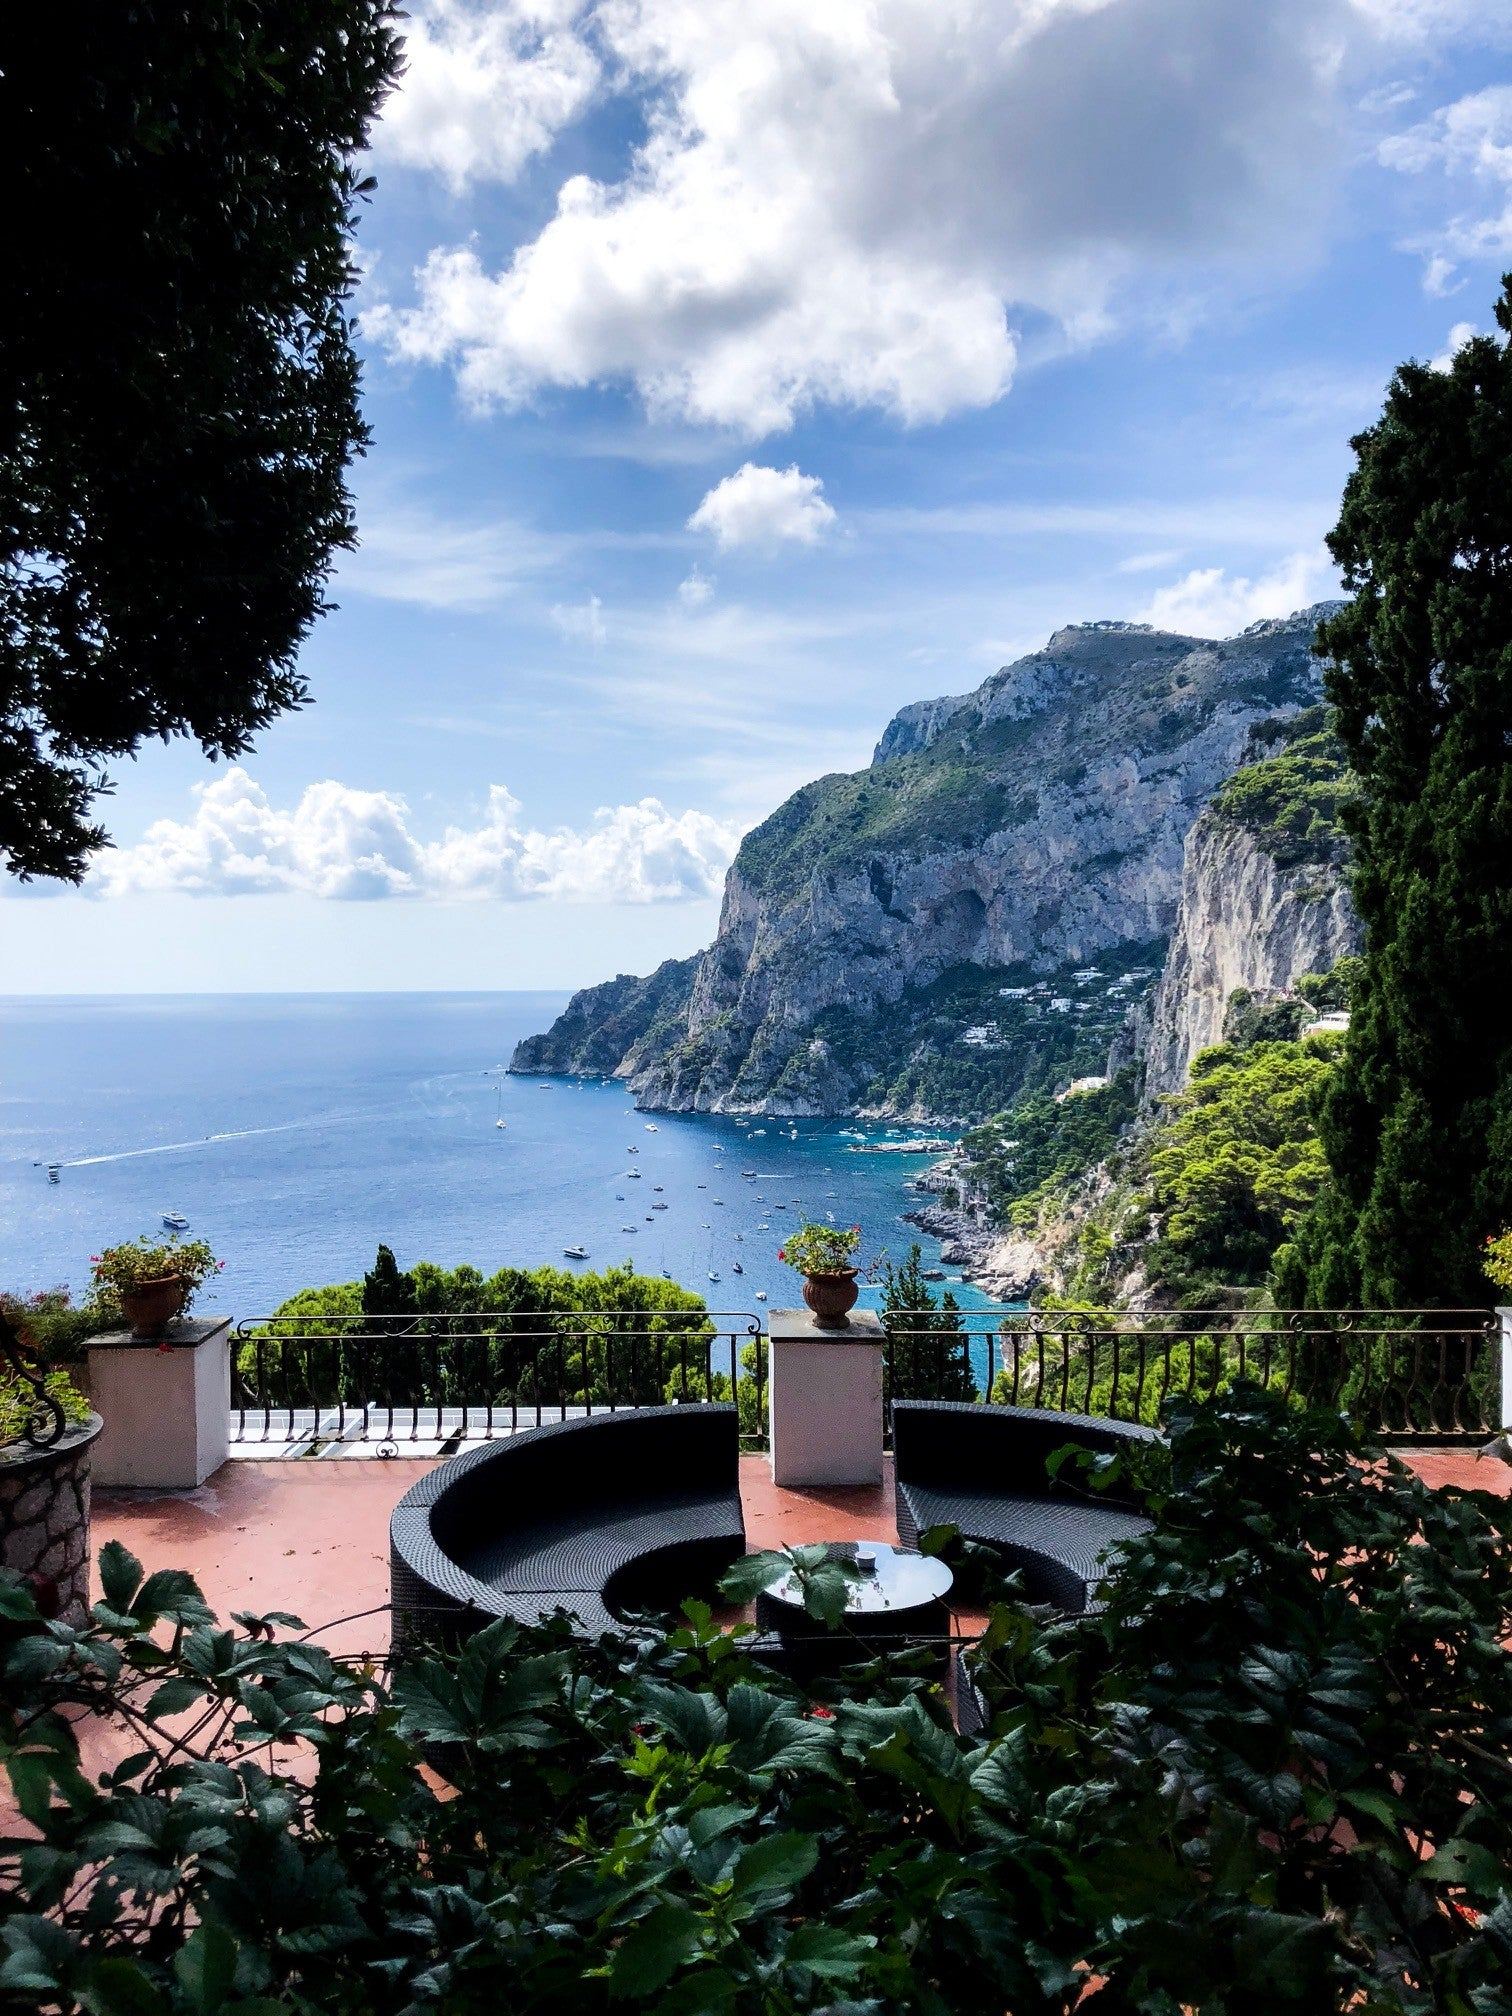 Capri Island views